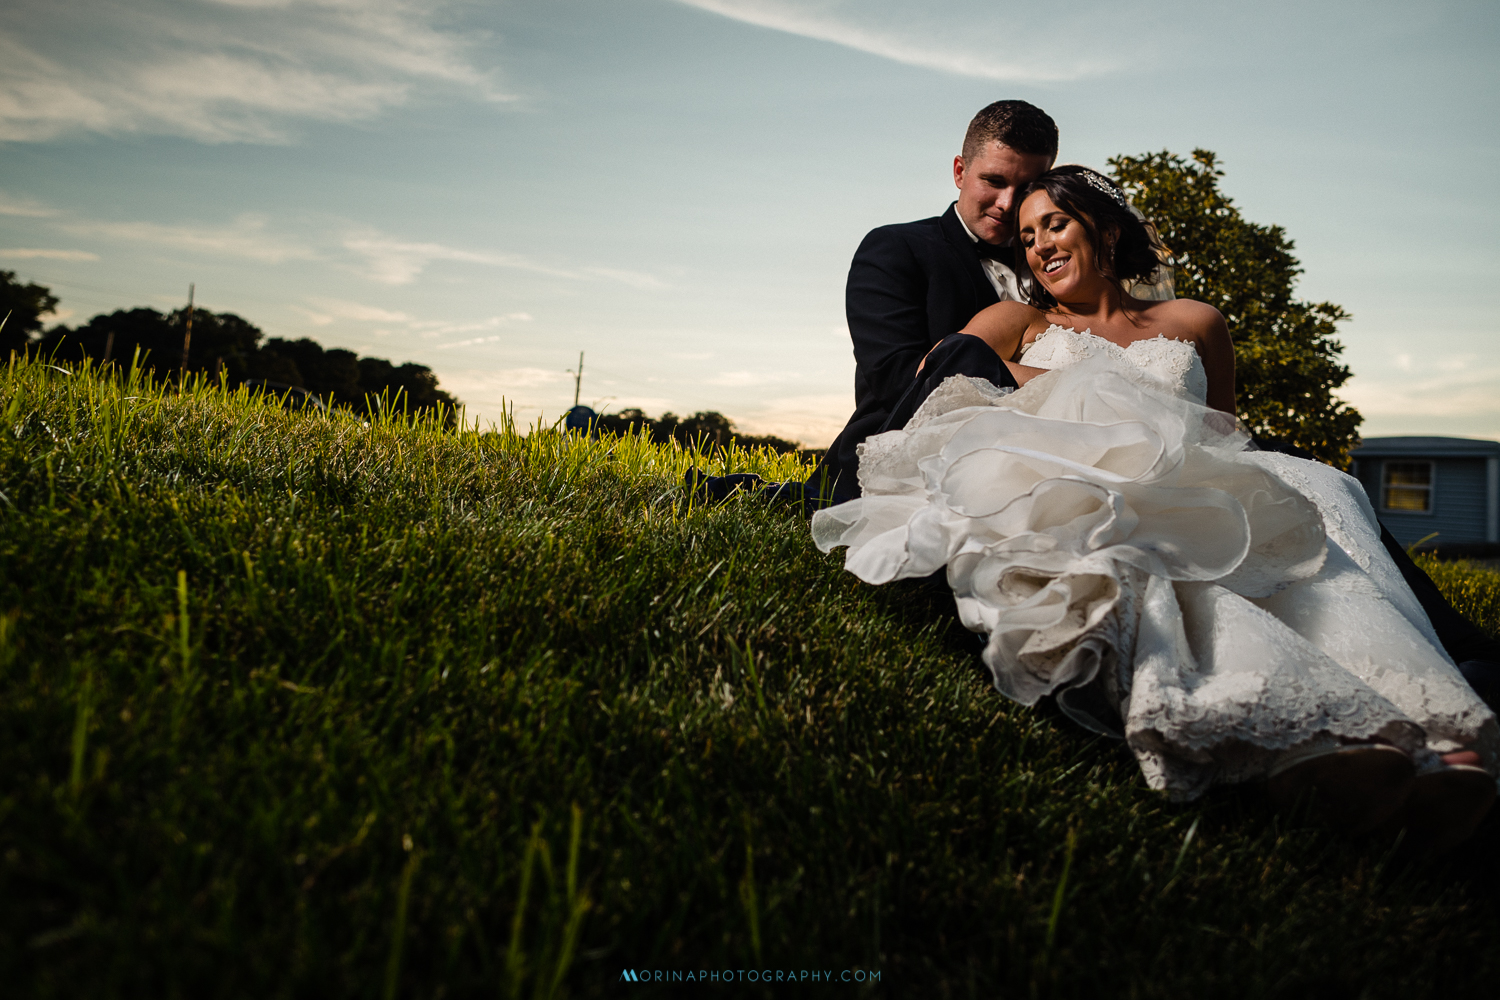 Amanda & Austin wedding at Crystal Point Yacht Club 100.jpg